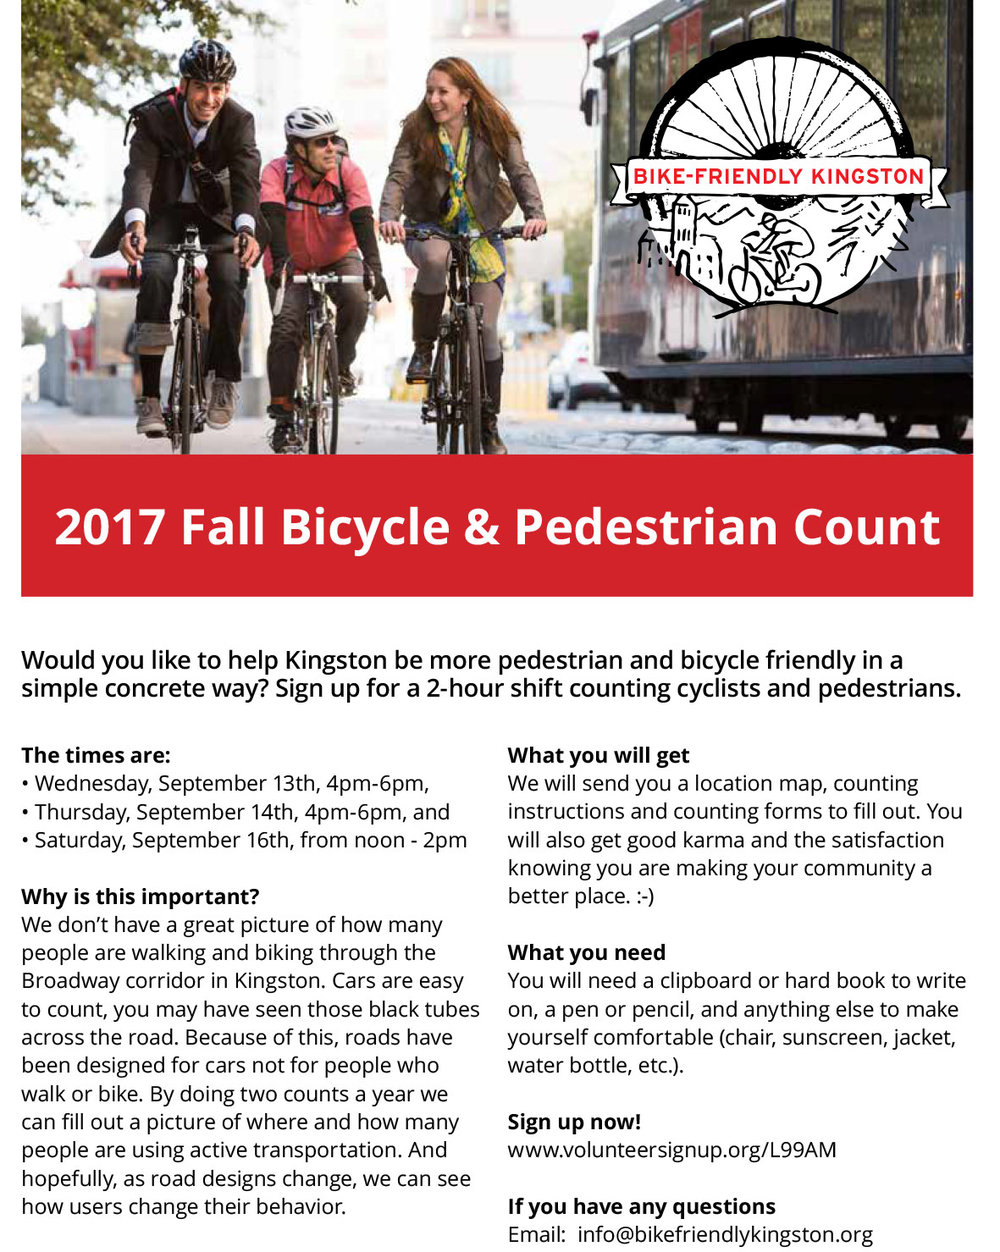 2017_BFK_BikeCount_Flyer.jpg